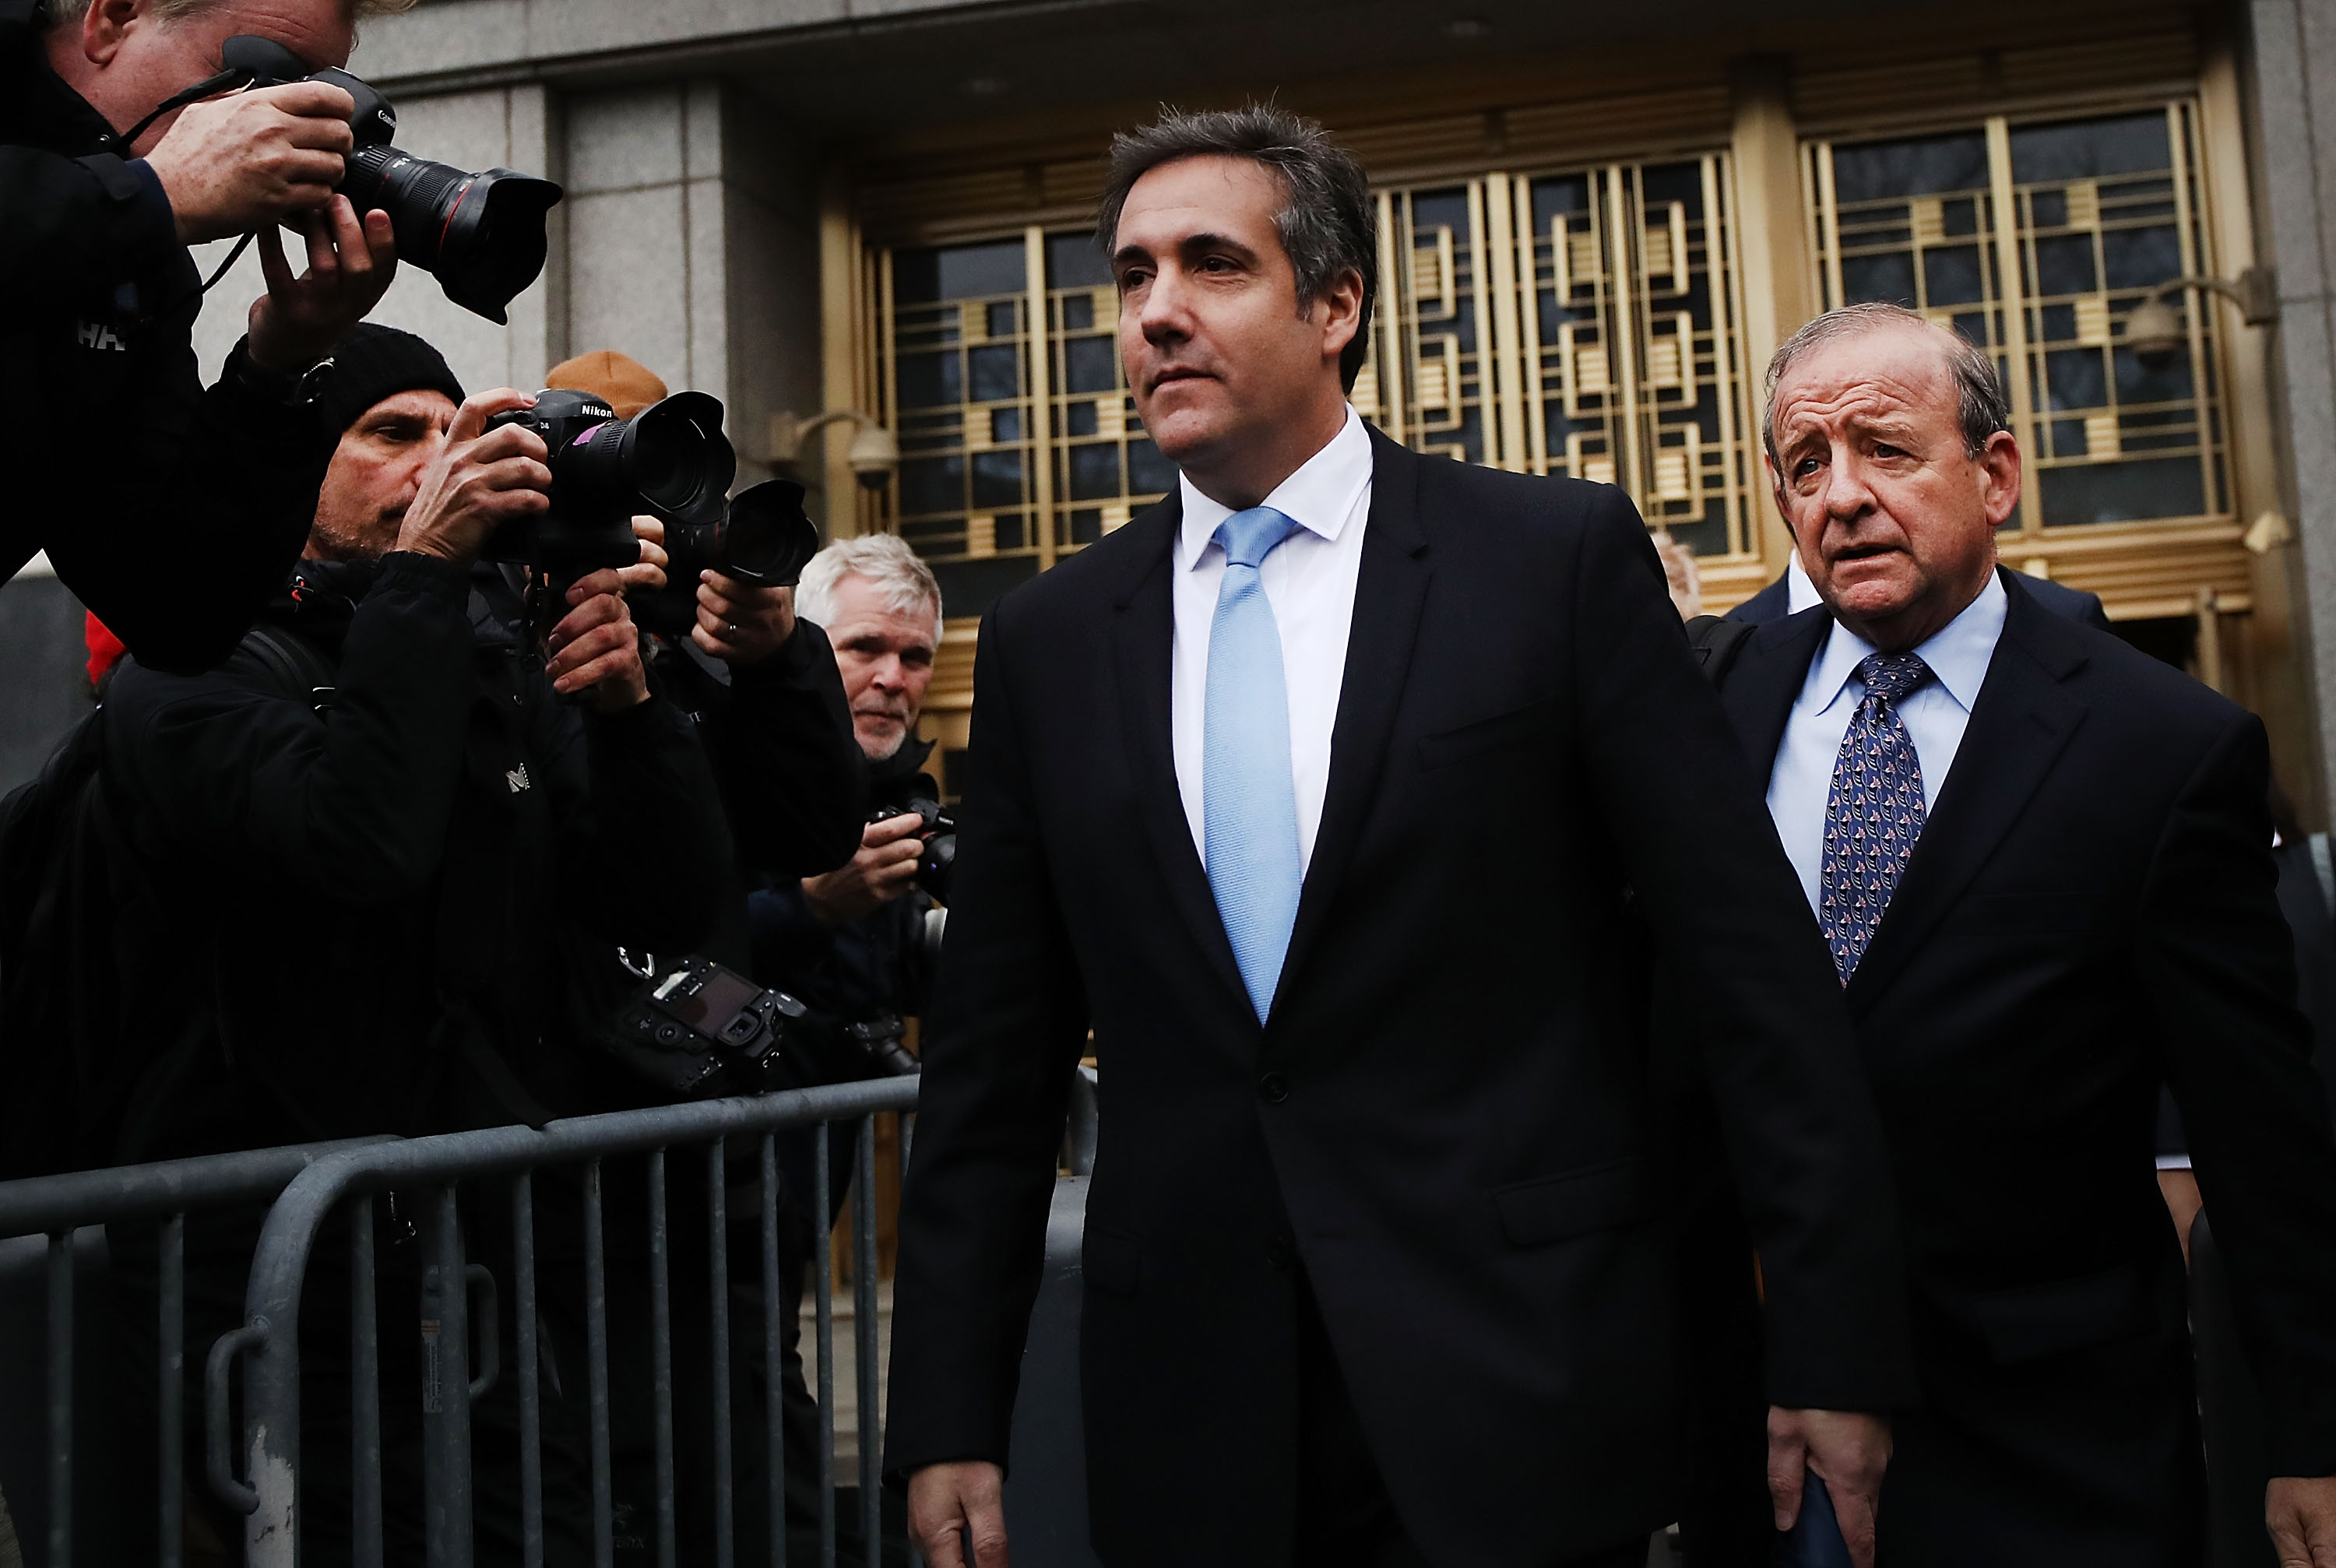 President Donald Trump's long-time personal attorney Michael Cohen exits a New York court on April 16, 2018 in New York City.